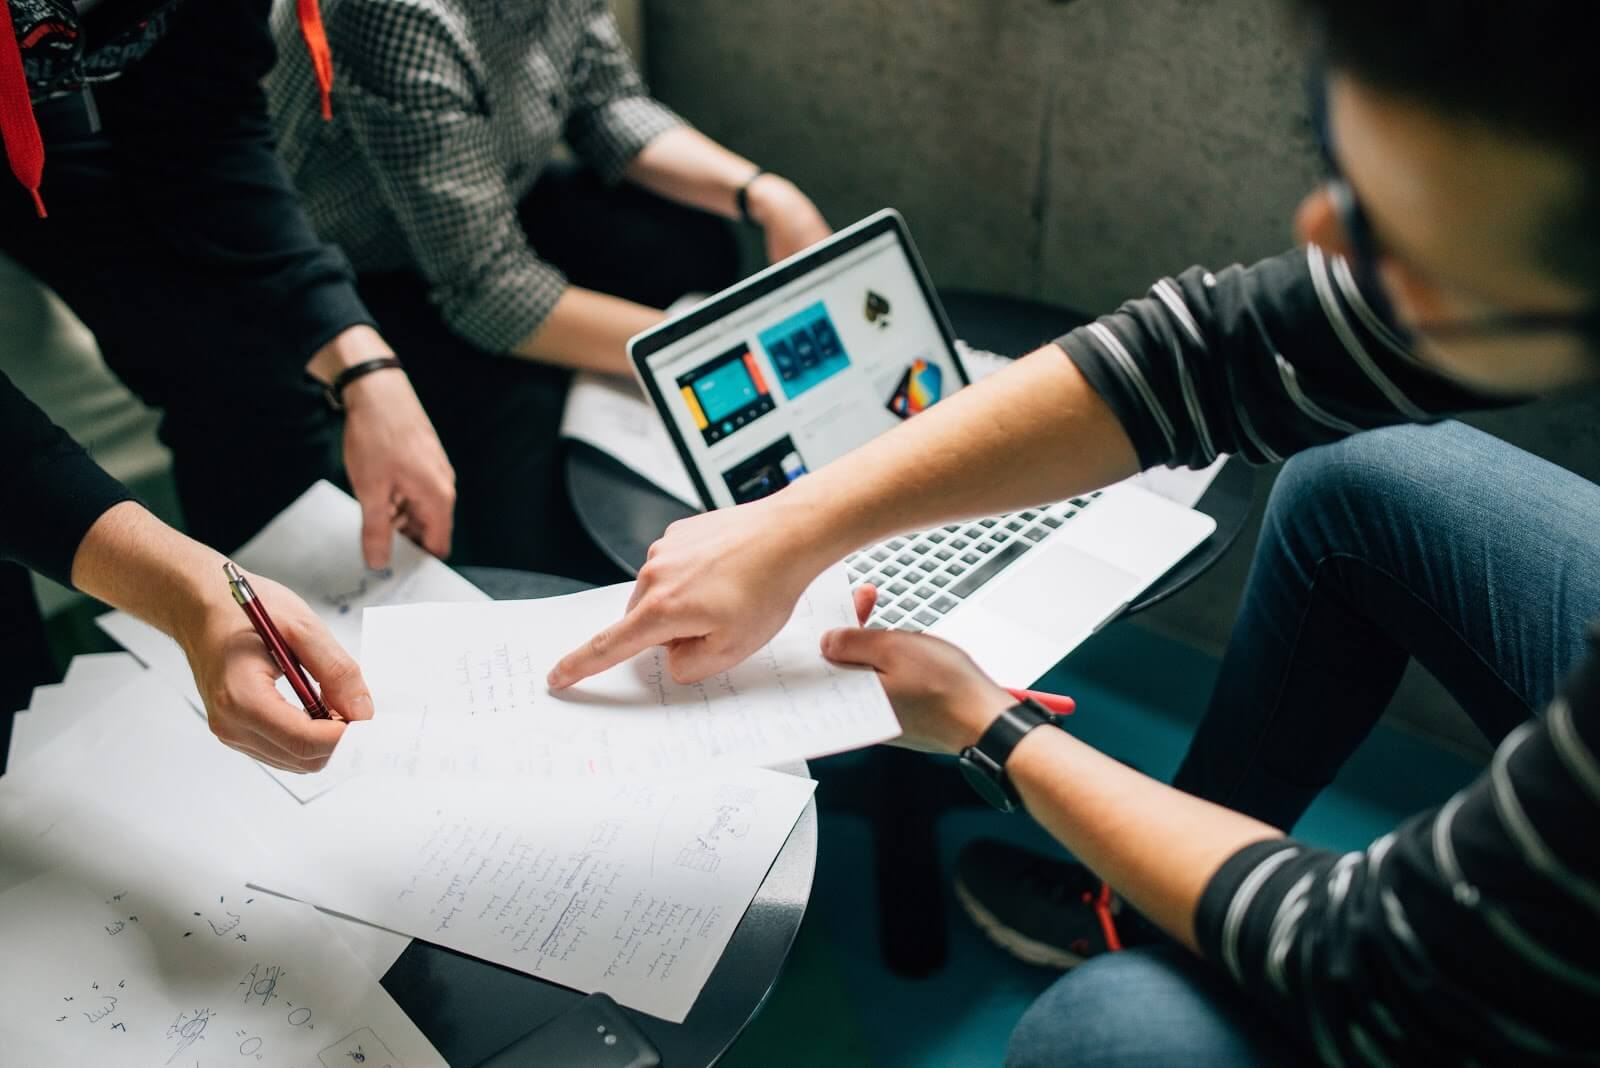 A Product Owner discusses a user story with a developer and the Scrum Master. A Scrum Team is made up of the Product Owner, the Scrum Master and the Development Team.